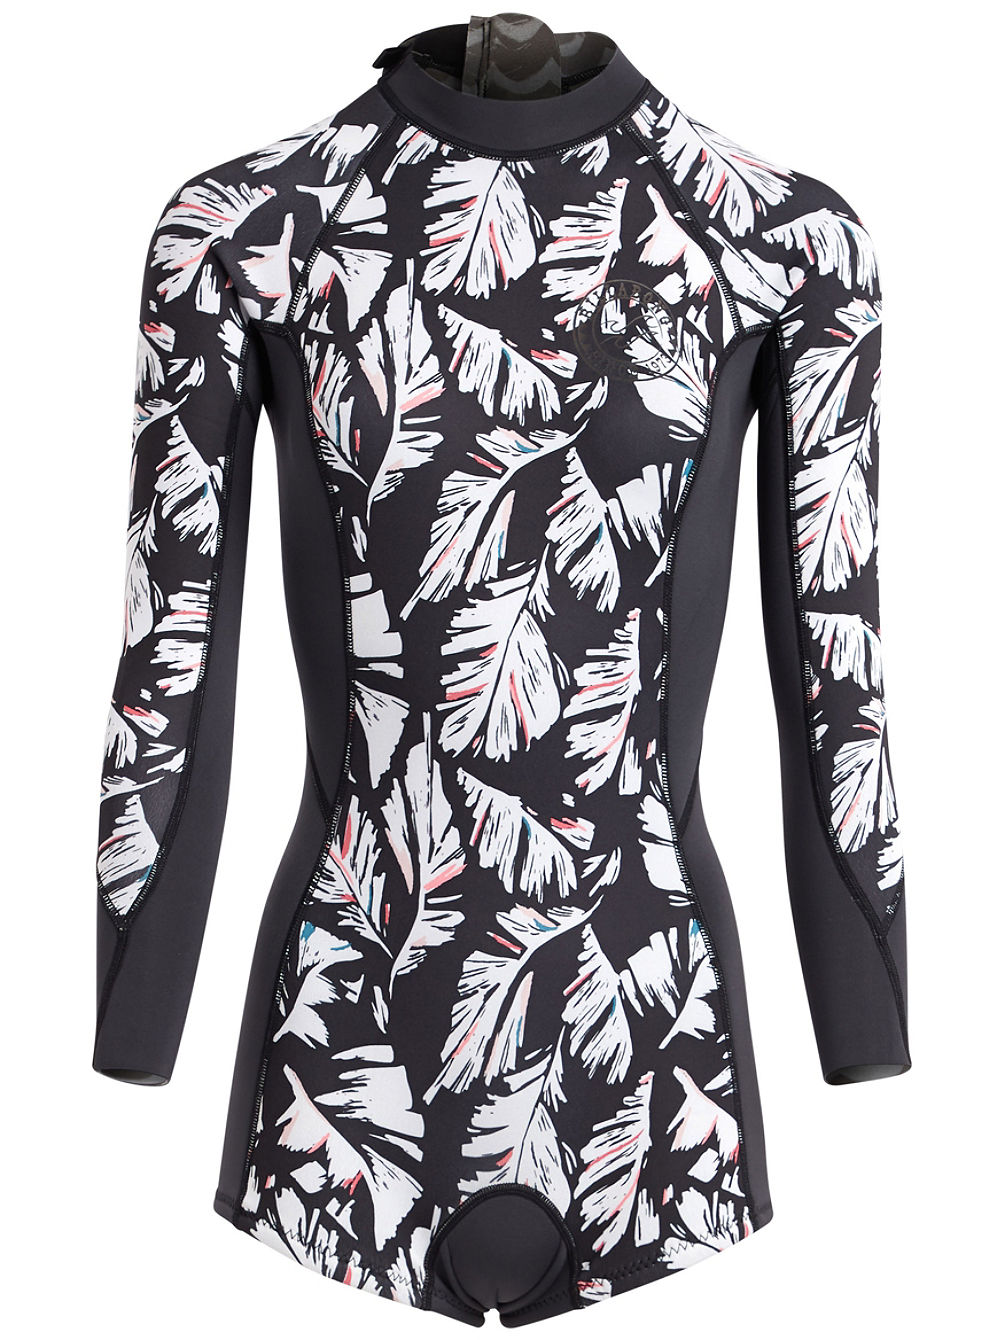 Spring Fever Wetsuit